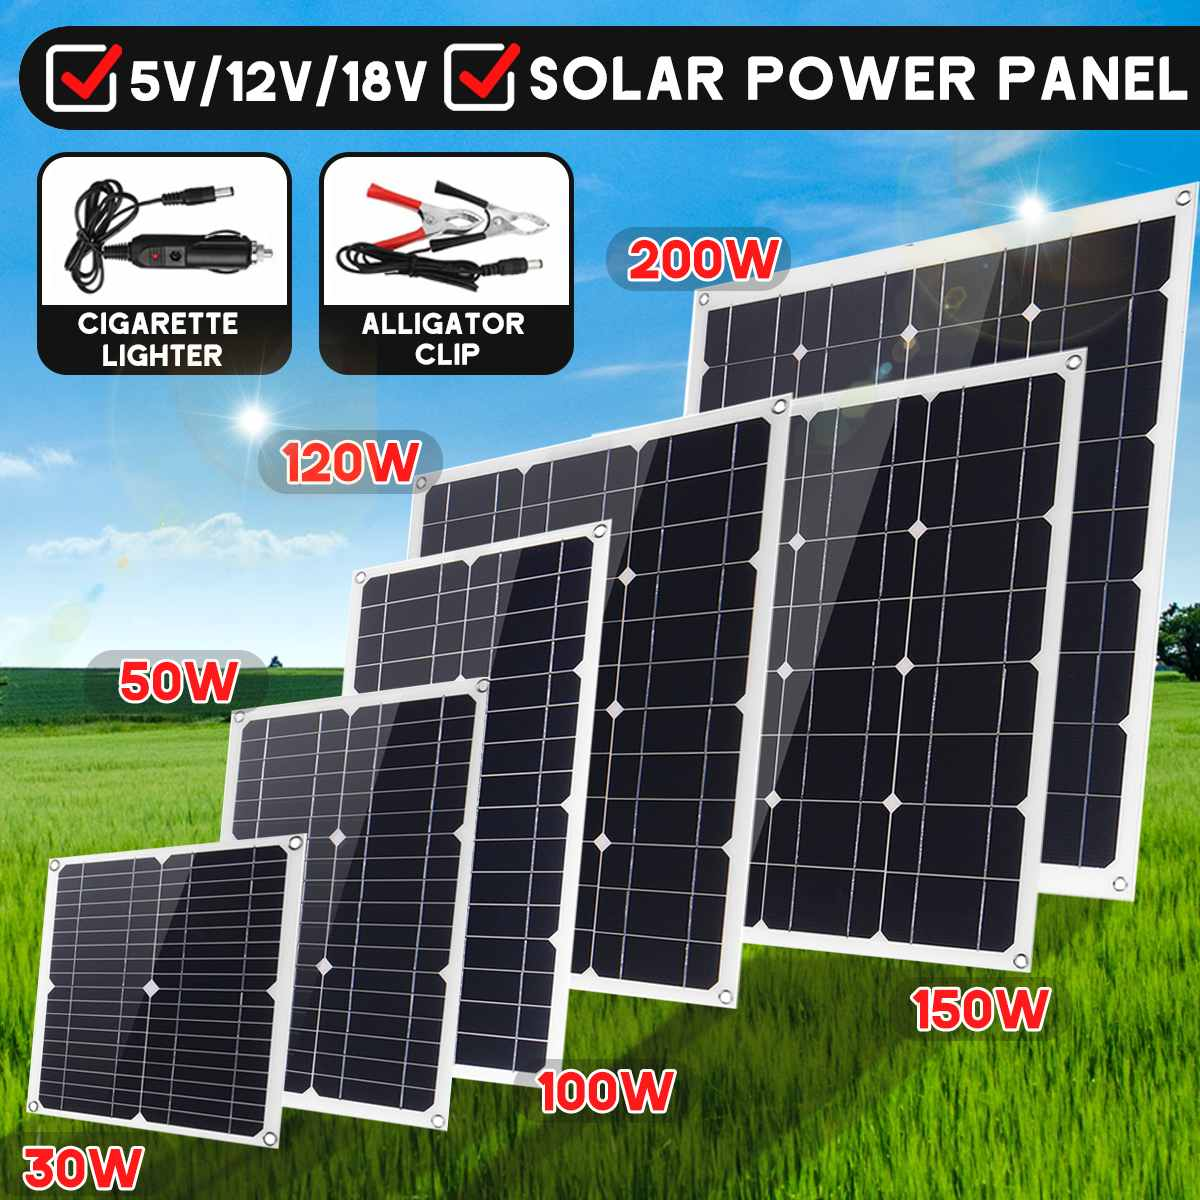 30W/50W/<font><b>100W</b></font>/120W/150W/200W Mono <font><b>Solar</b></font> <font><b>Panel</b></font> 18V DC Dual USB <font><b>12V</b></font>/5V Flexible <font><b>Solar</b></font> Charger For Car RV Boat Battery Charge image